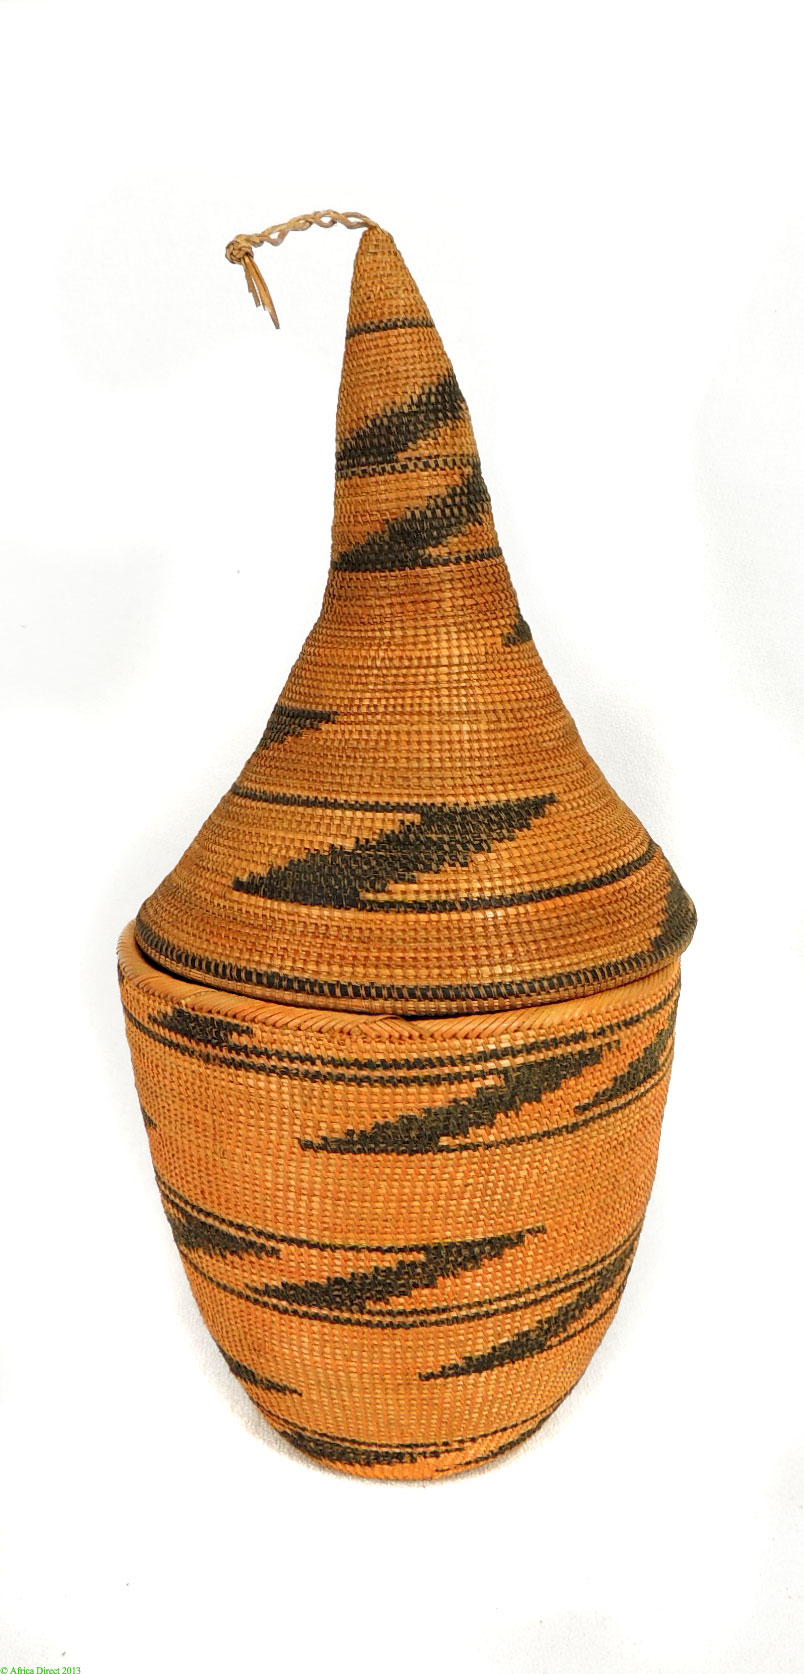 Amazing African Traditional Basket - PX0812  You Should Have_643279.jpg